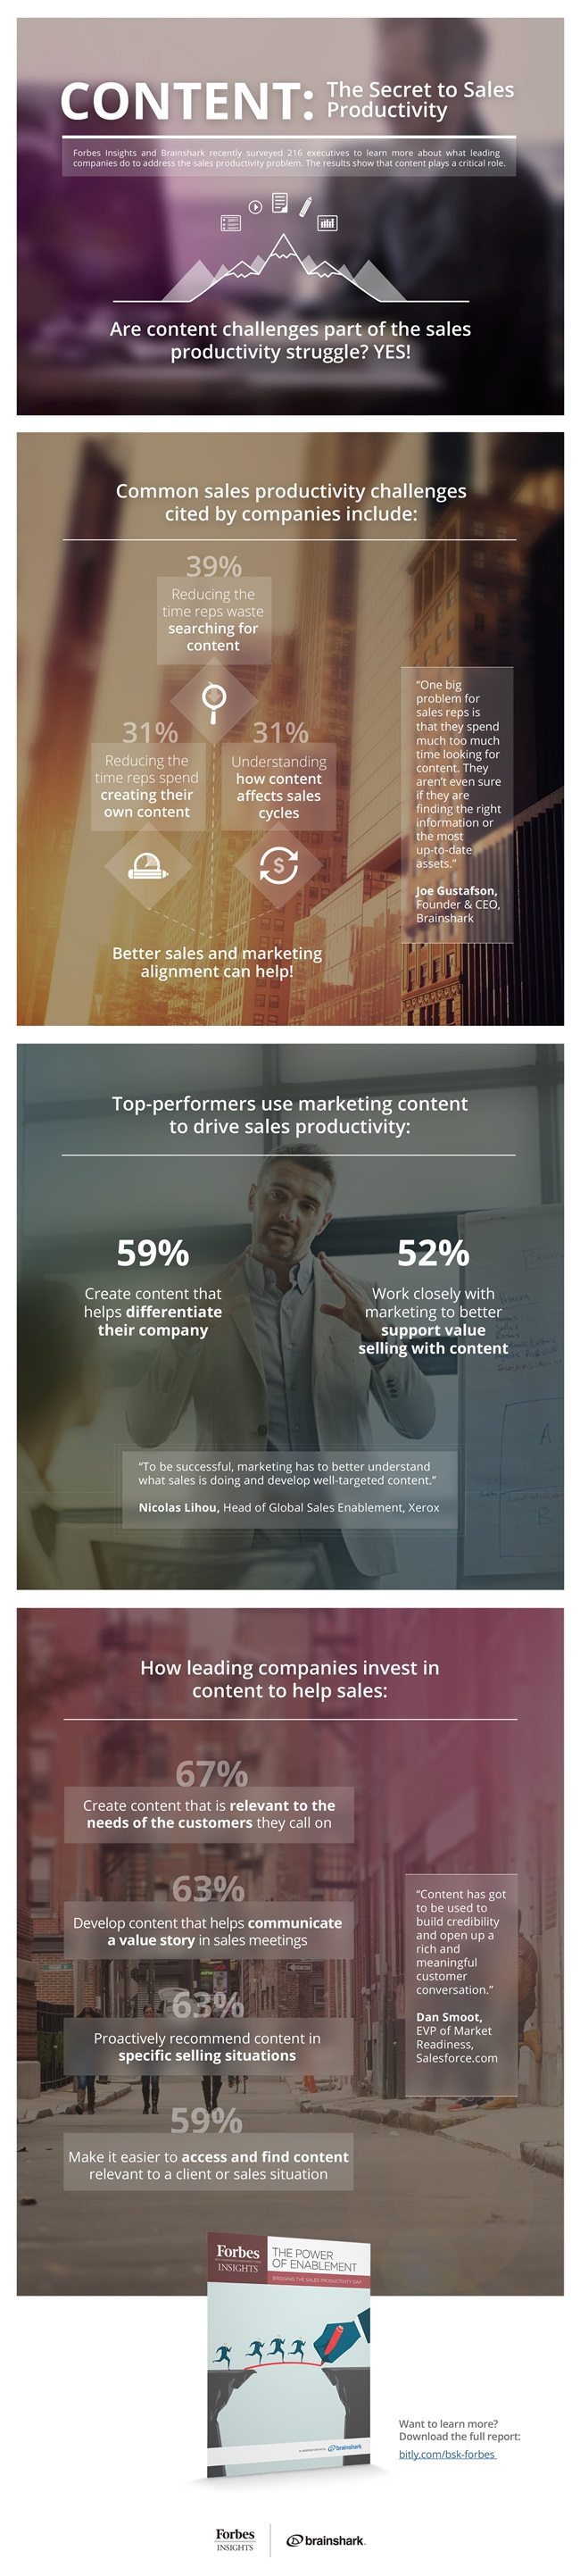 Content for Sales Productivity